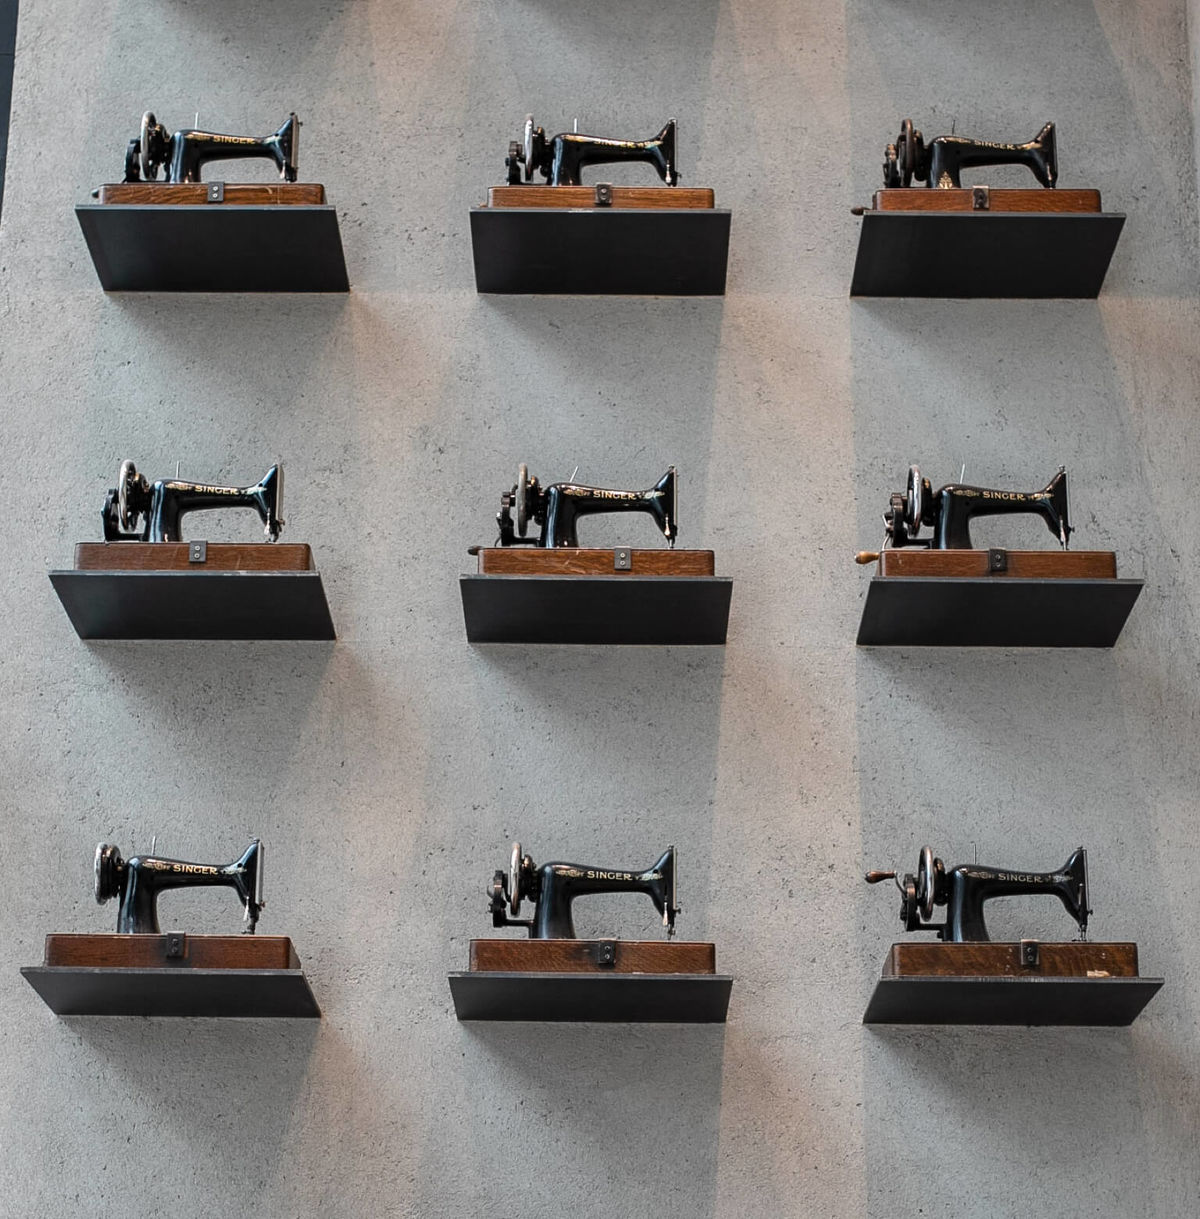 A wall in one of our store displaying our iconic sewing machines.